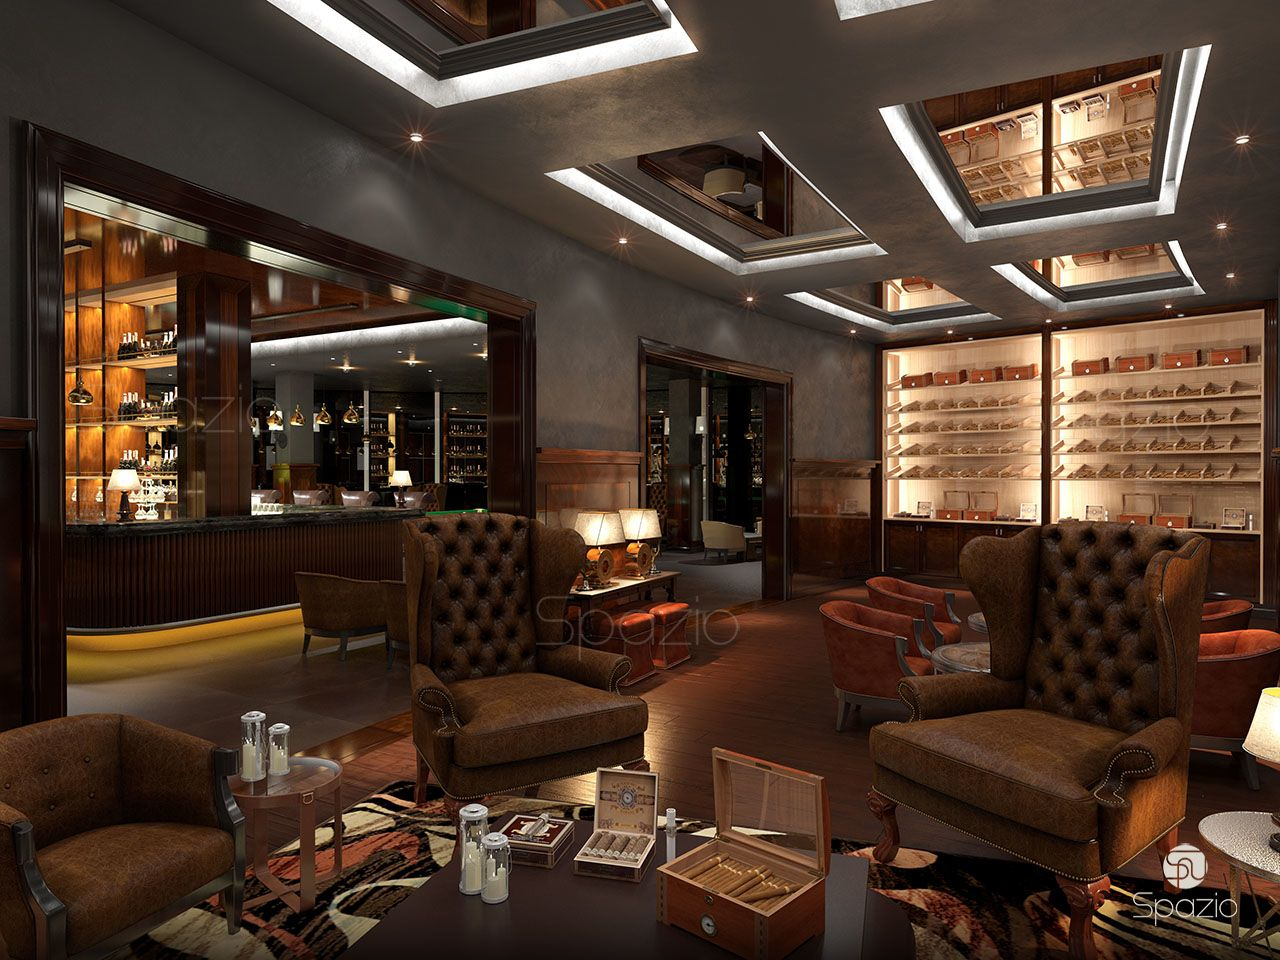 Cafe restaurant interior design in dubai spazio